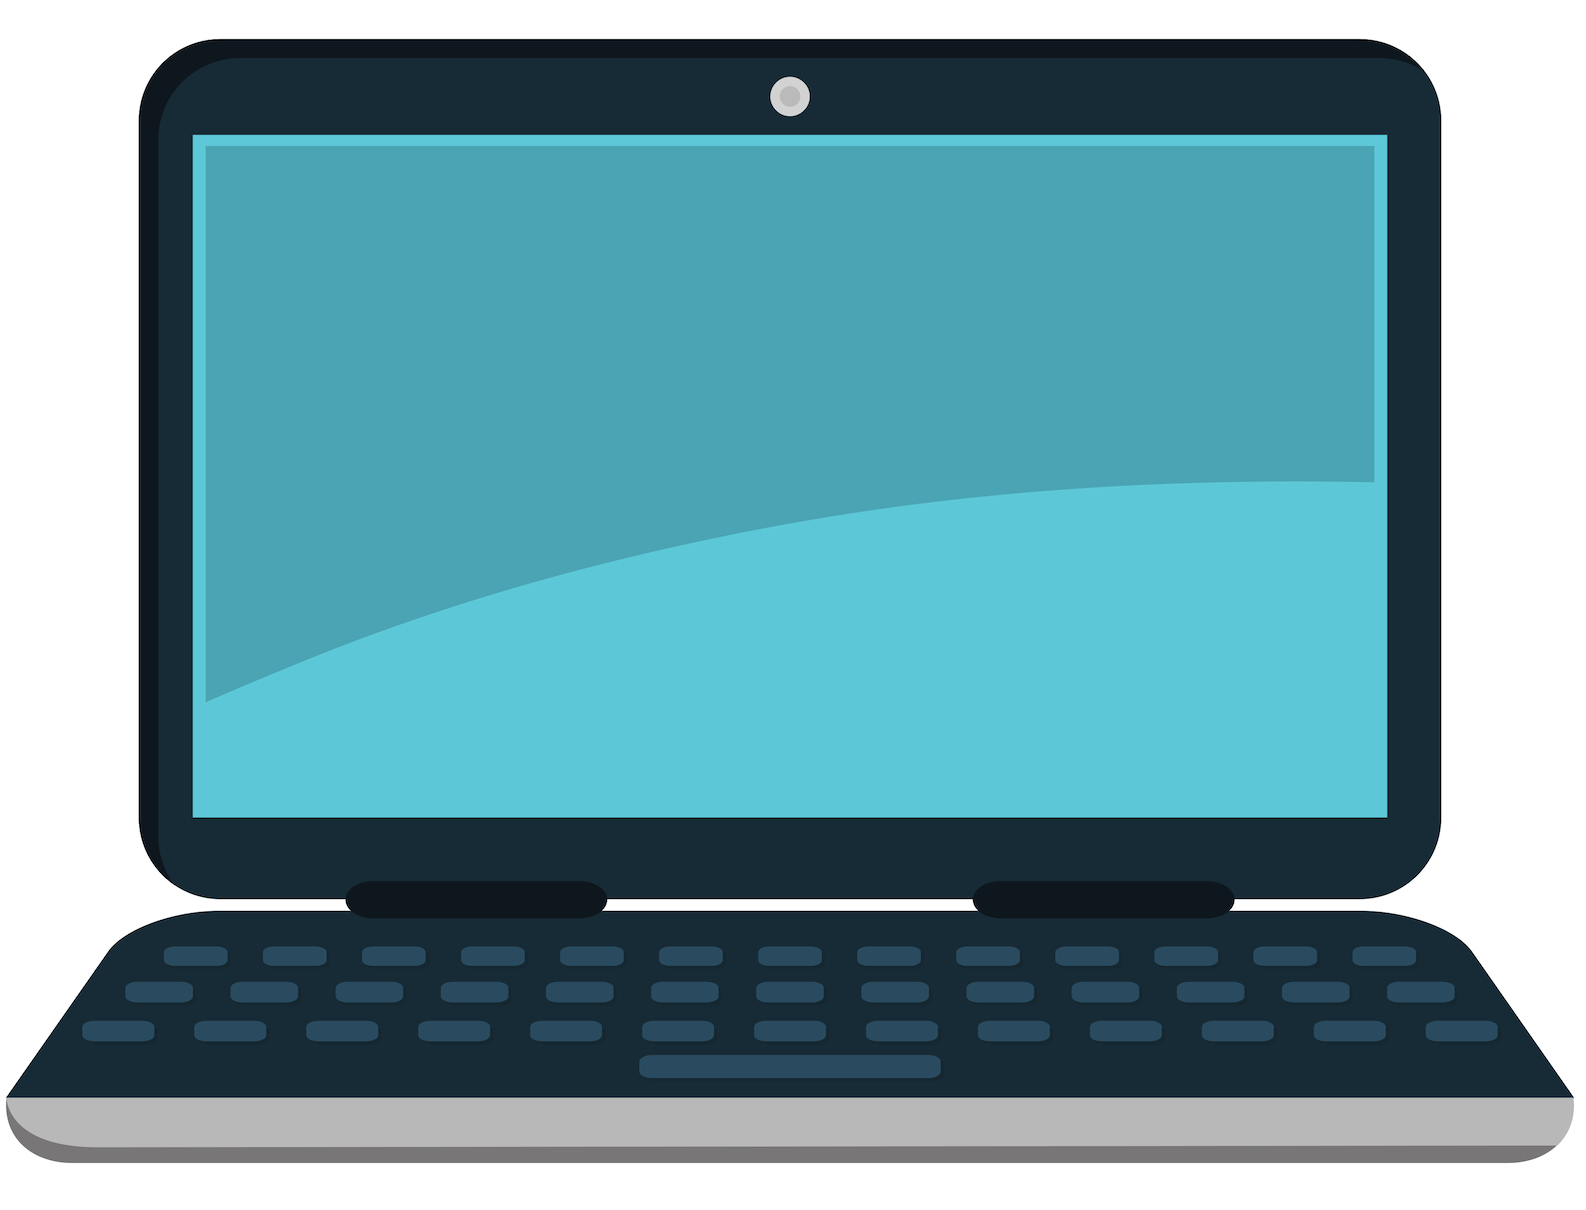 a graphic of a laptop